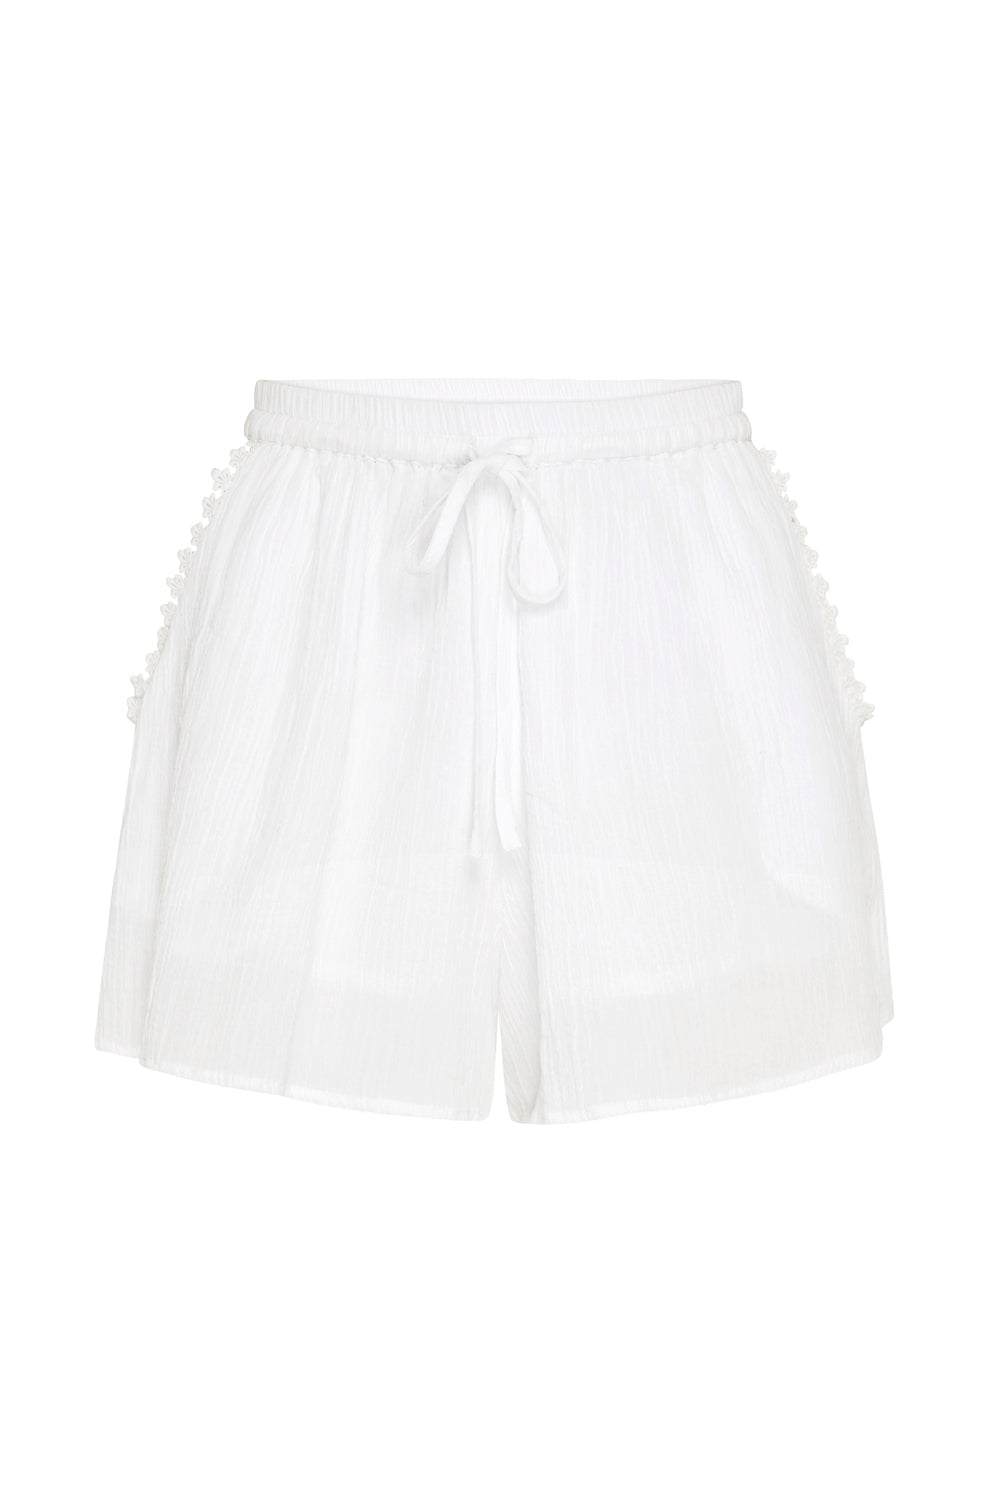 Breeze Shorts in Coconut